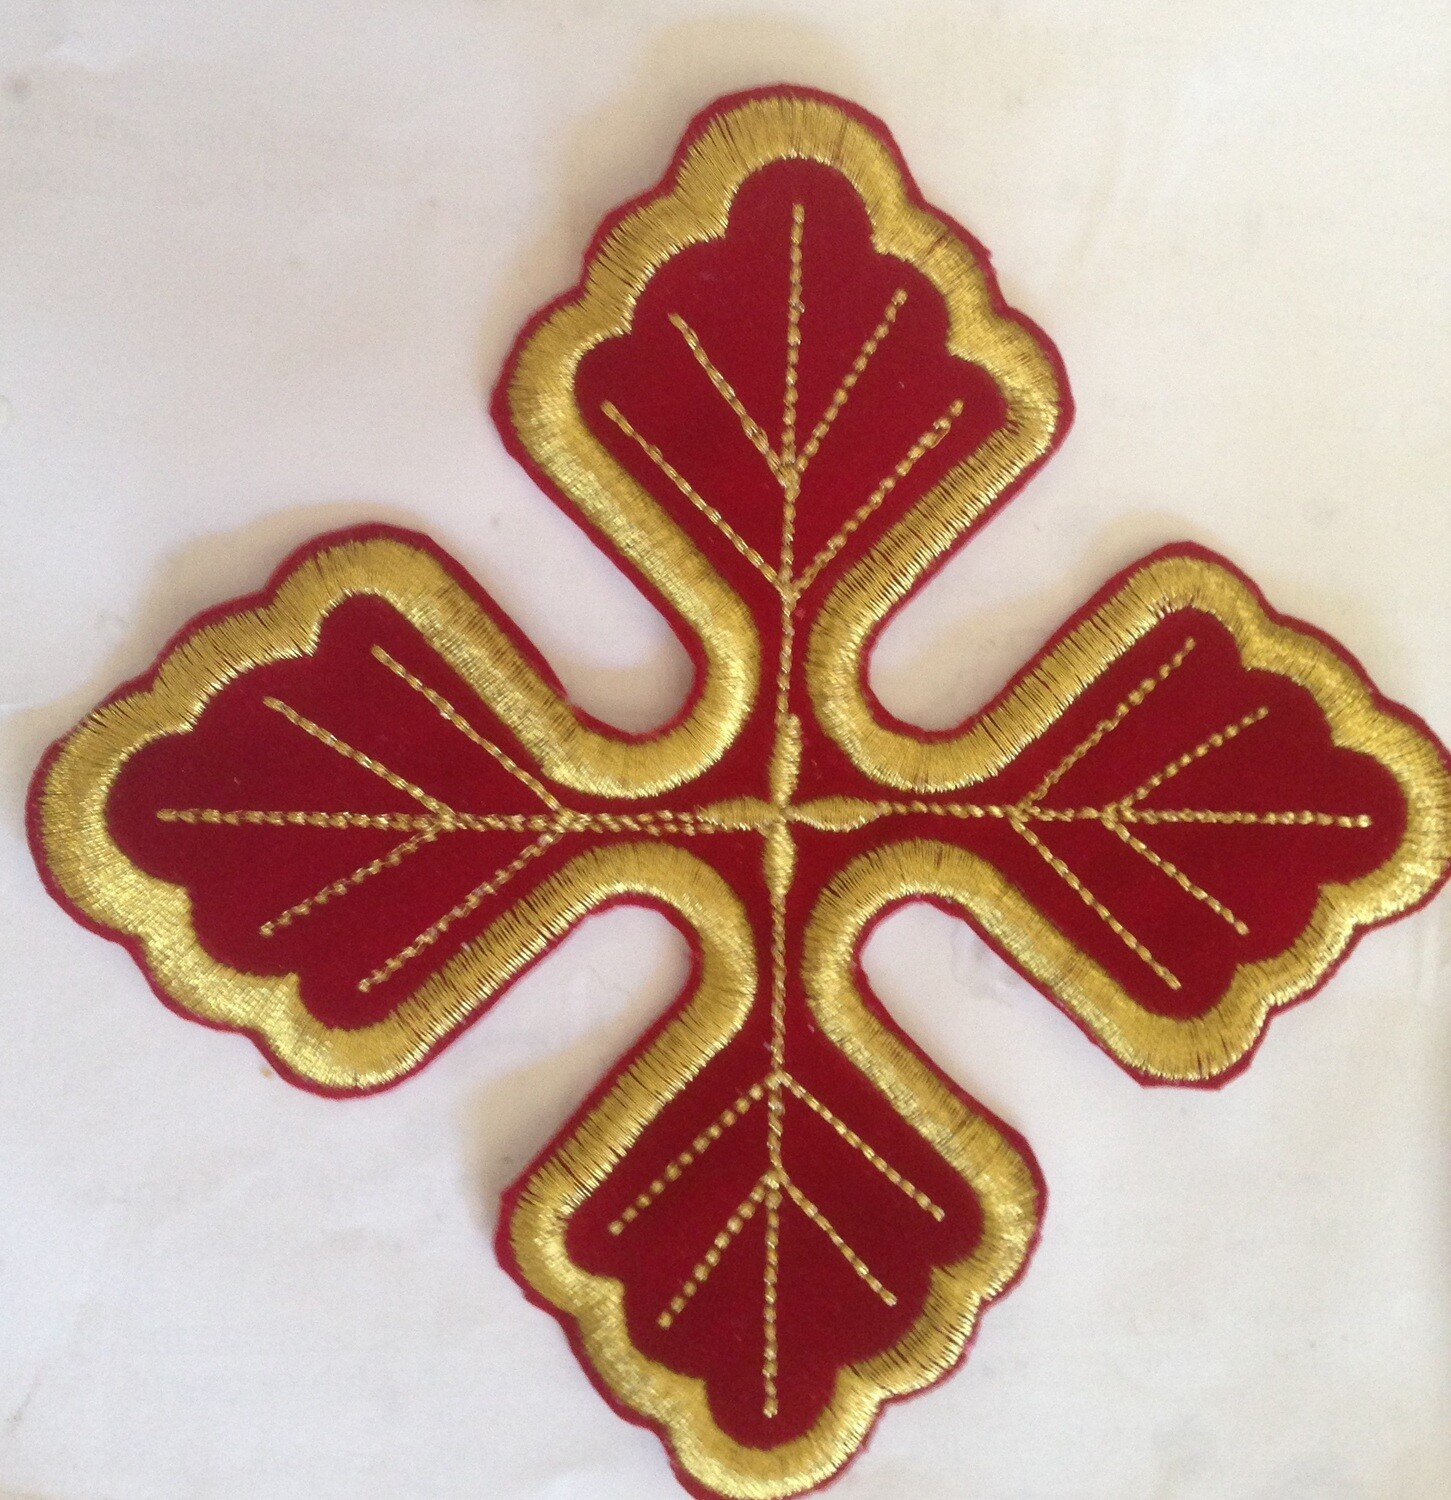 Stitches embroidery cross design on velvet size 4 inches